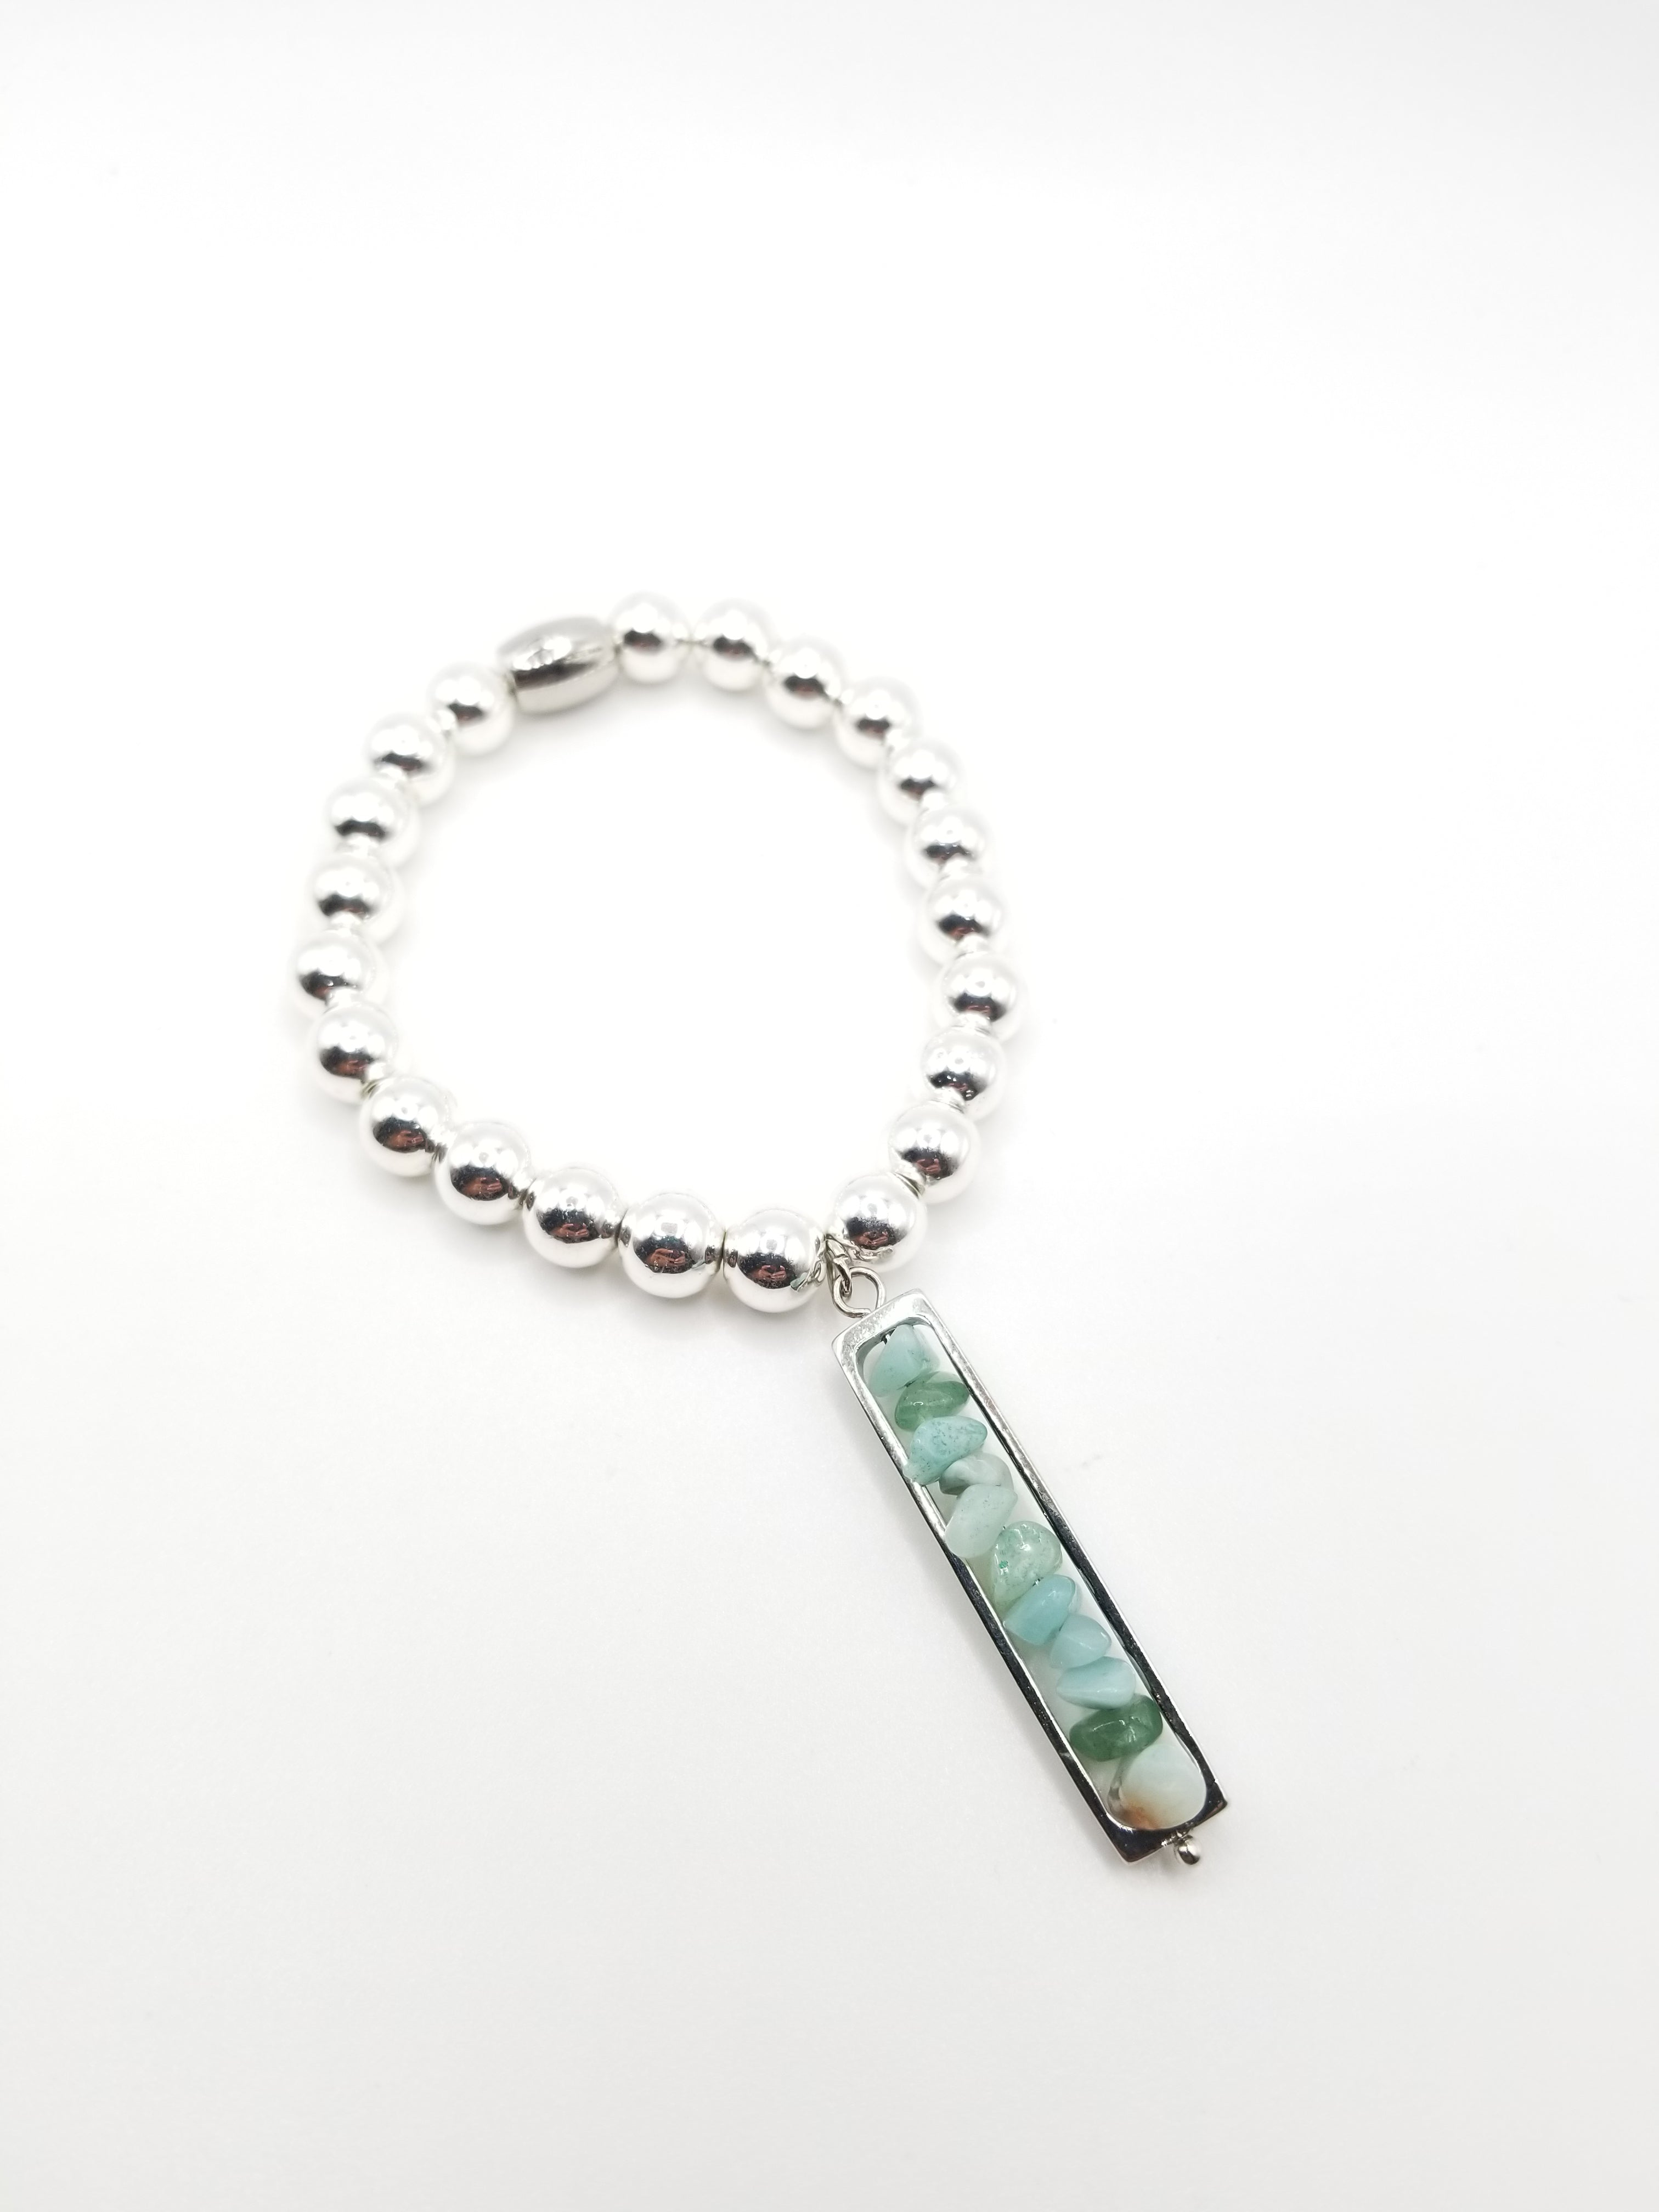 White Hematite Beaded Bracelet with Jade Chipped Pendant